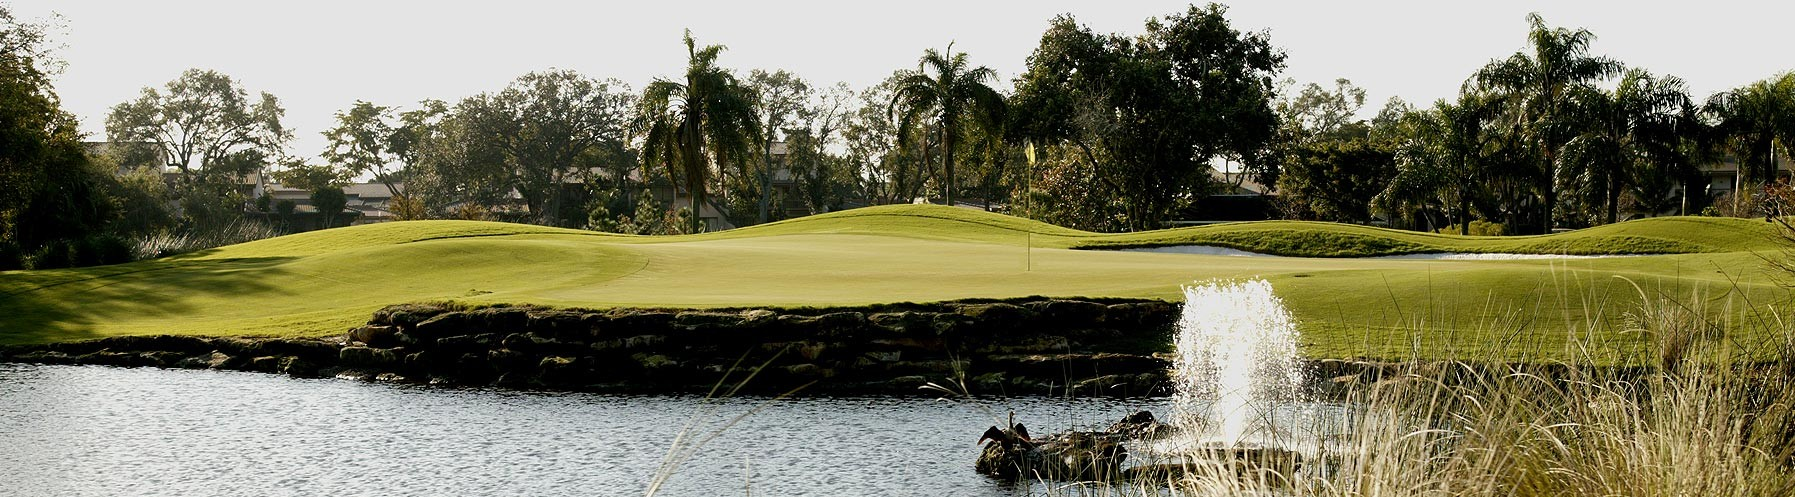 Hole 14 at the best golf course in fort lauderdale